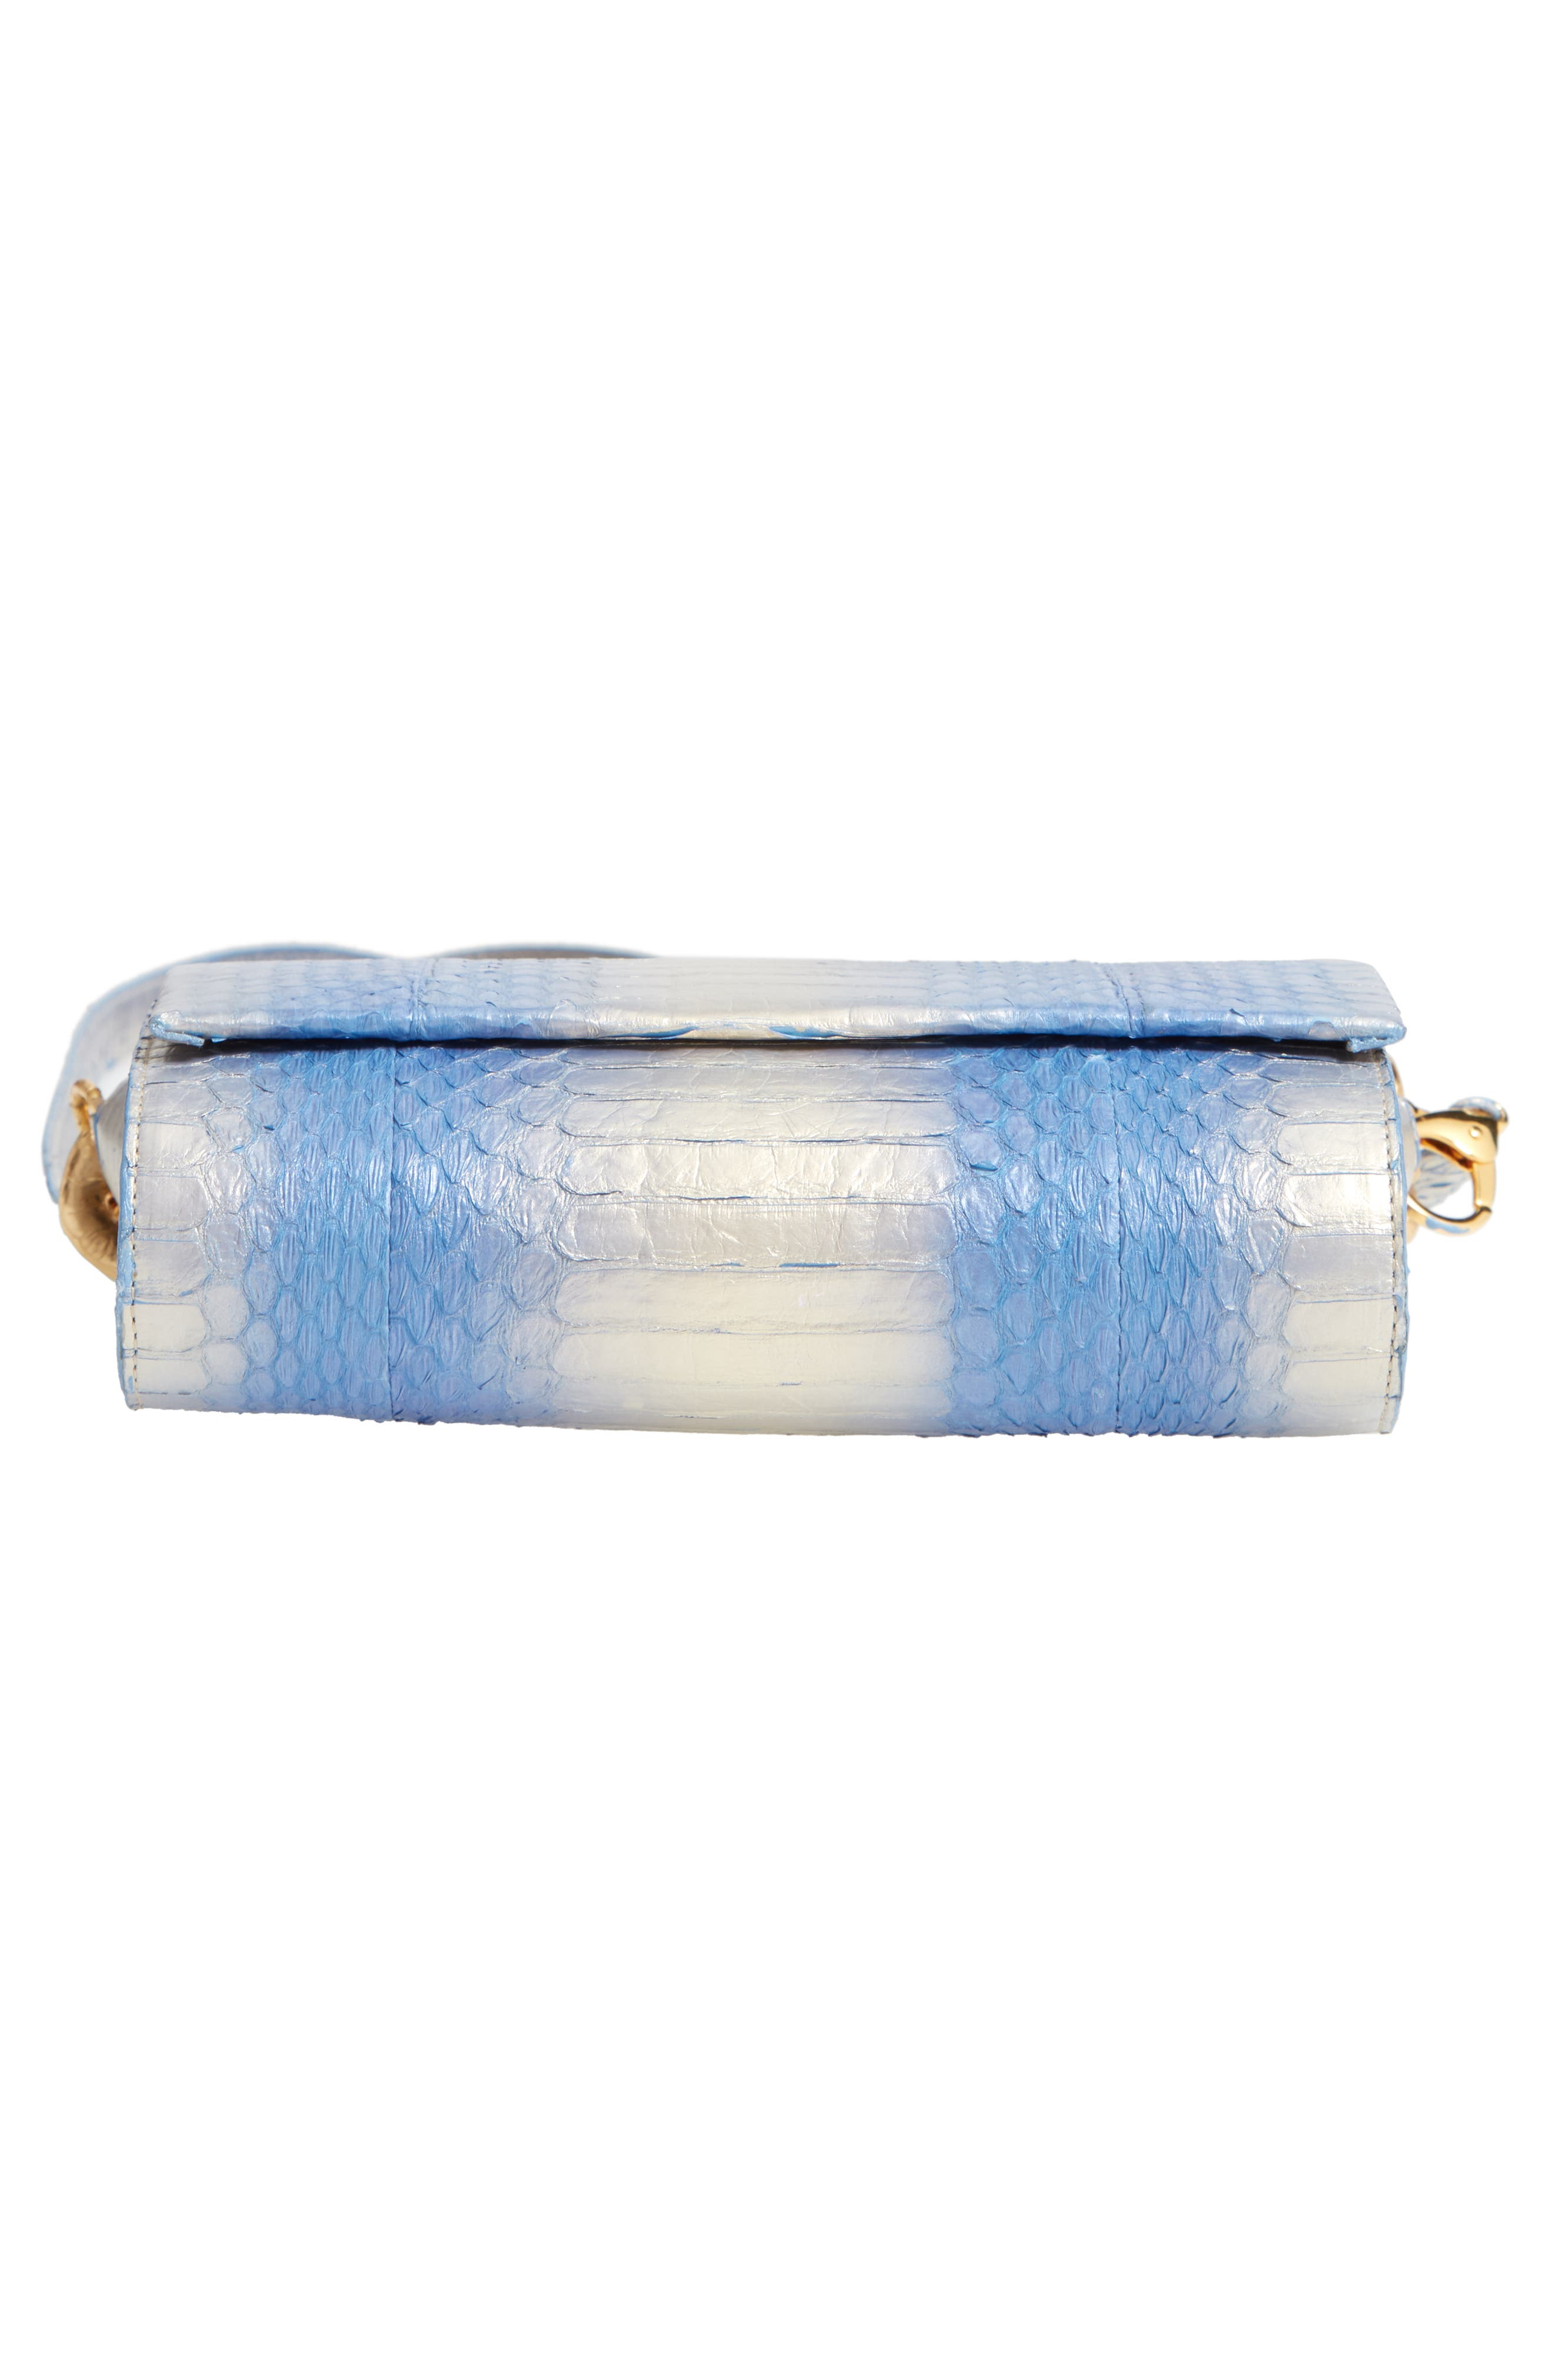 NANCY GONZALEZ, Small Carrie Genuine Crocodile Clutch, Alternate thumbnail 7, color, SILVER/ BLUE DEGRADE/ GOLD